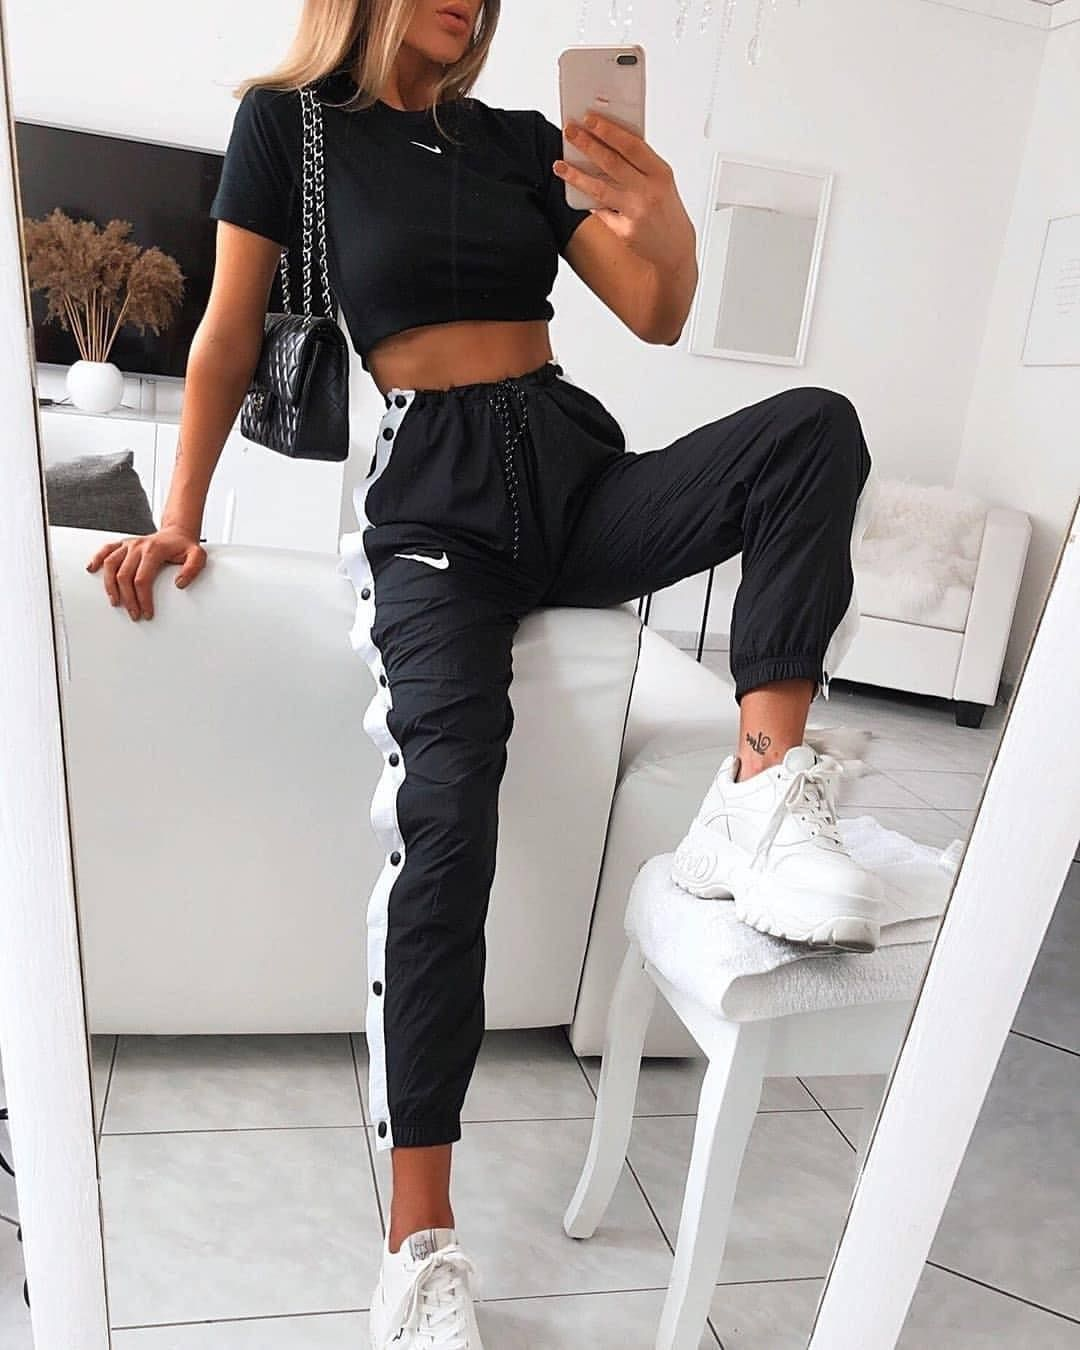 """GIRLS CHOICE on Instagram: """"I just love her outfit��� . . . �� @_girls_choice__ . . . . #novababe #mirrorselfie #casualchic #zaradaily #100flavoursuk #dresses__up…"""""""